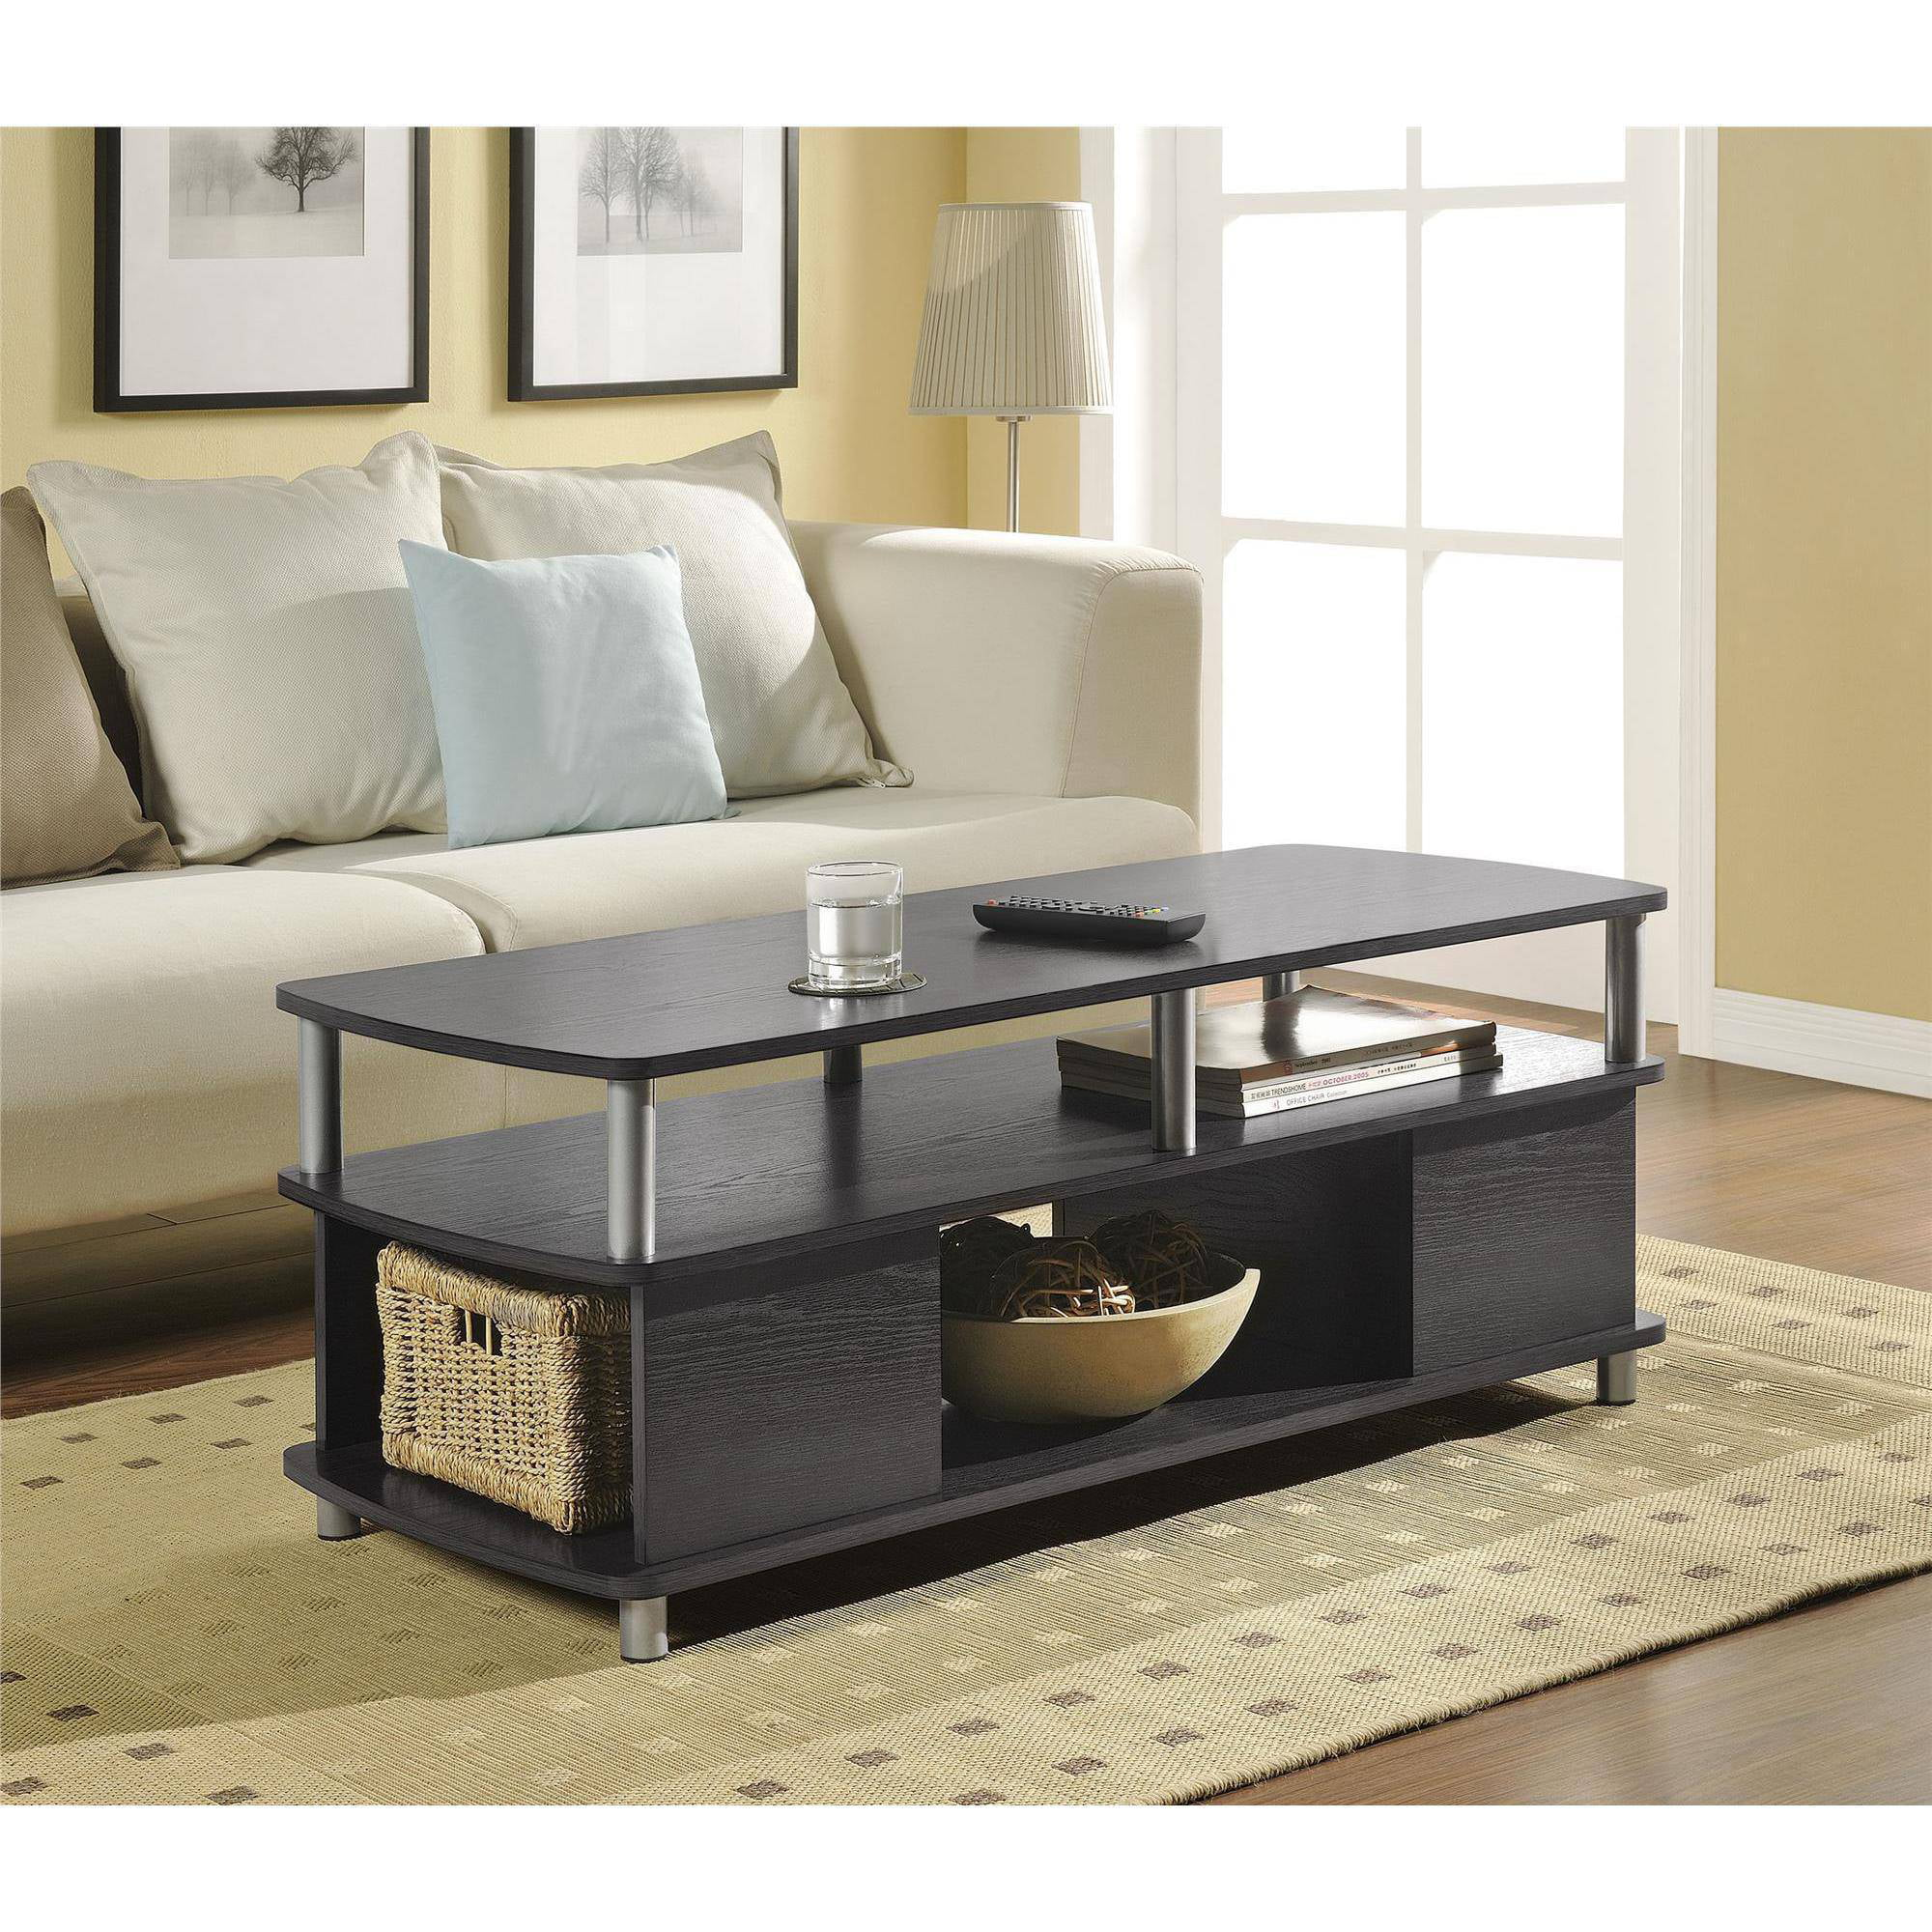 Ameriwood Home Carson Coffee Table Espresso Silver Walmart